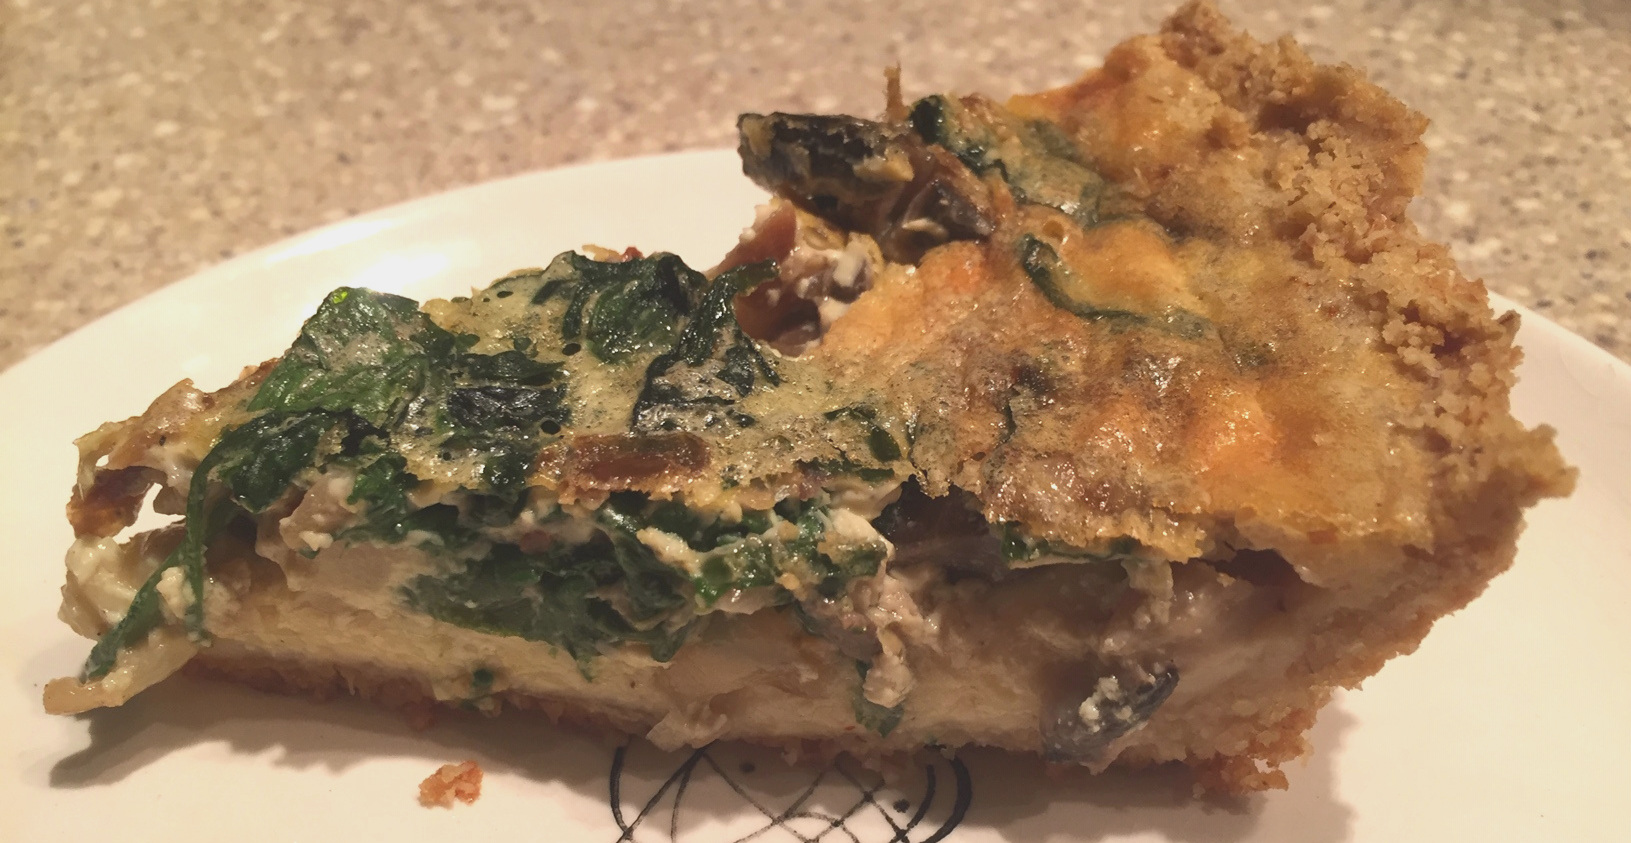 Quiche 2 -  Spinach and a mixture of mushrooms. Much improved crust!